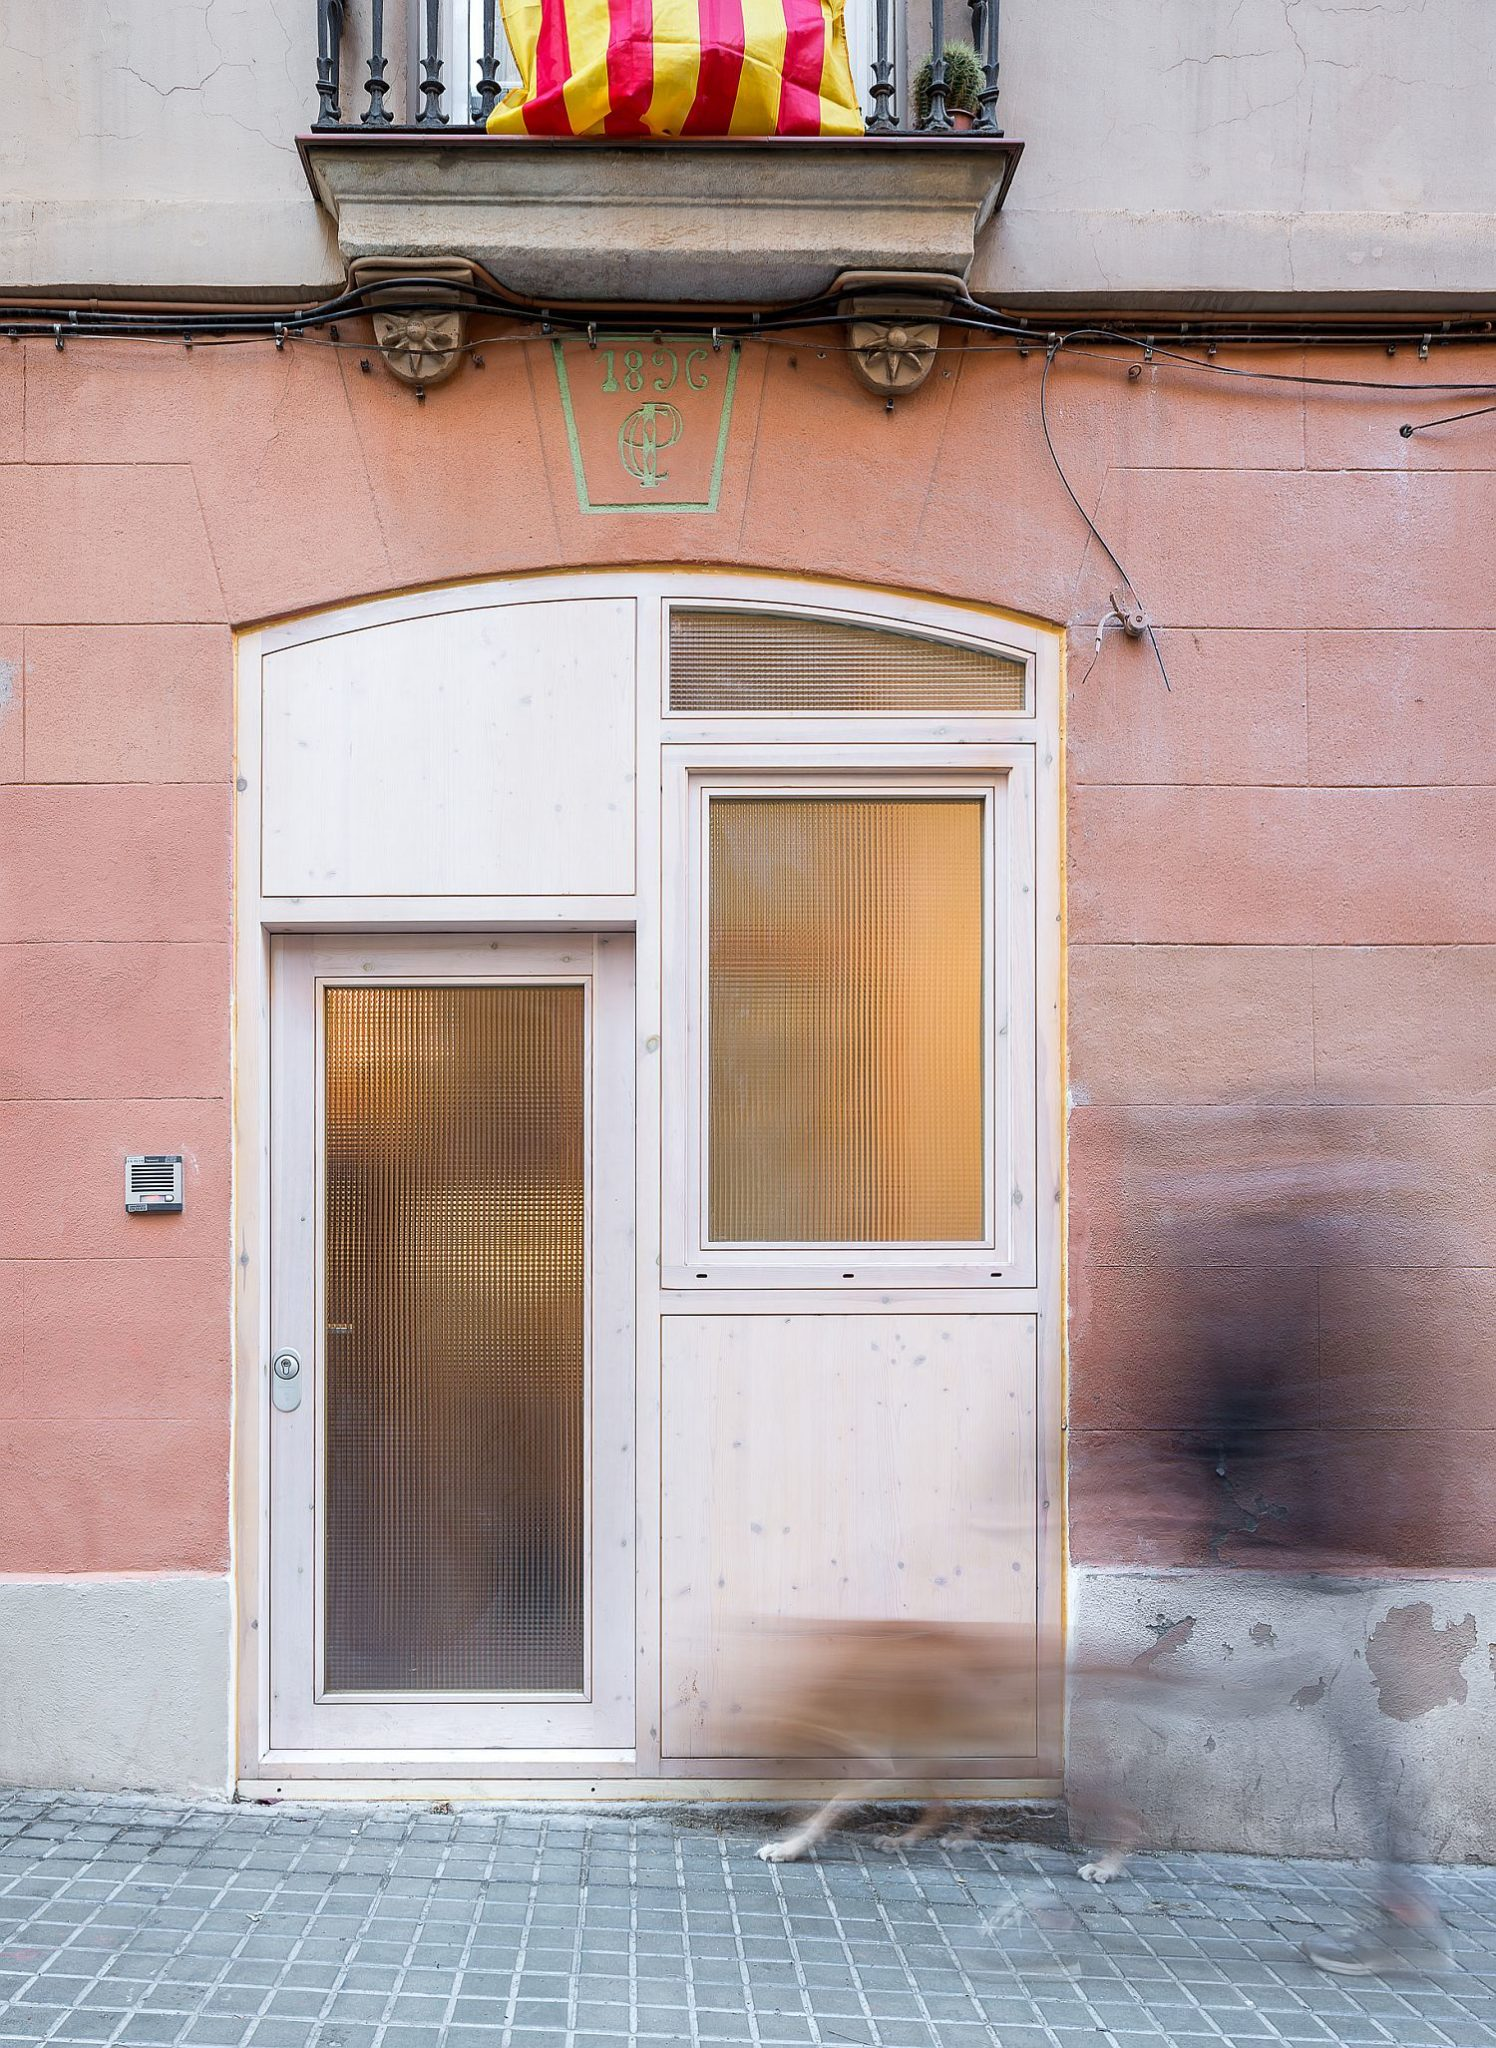 Entrance to the small studio apartment in Barcelona